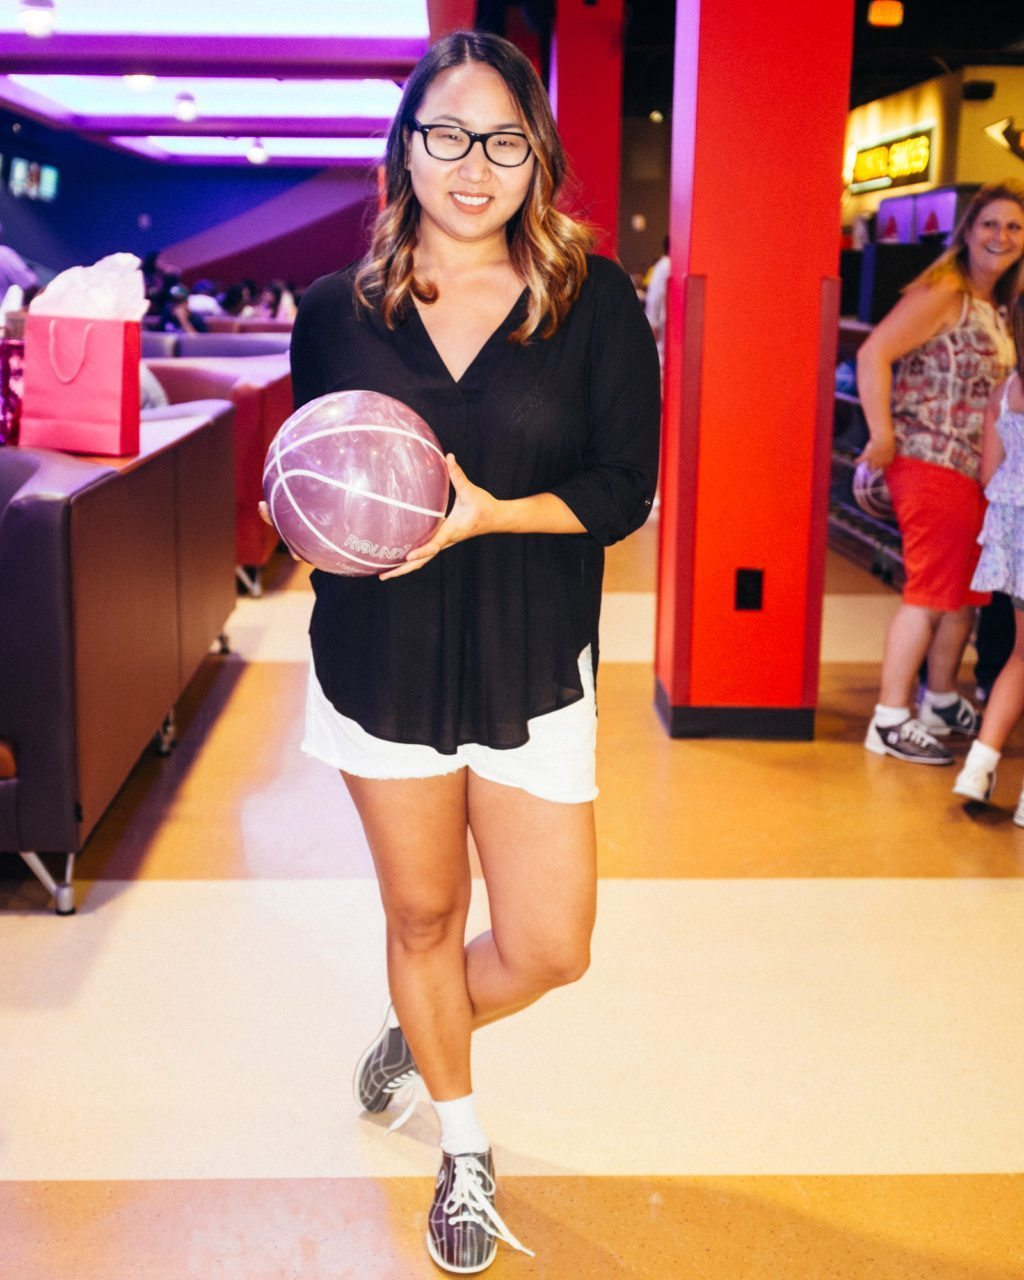 round-one-bowling-alley-grapevine-1155